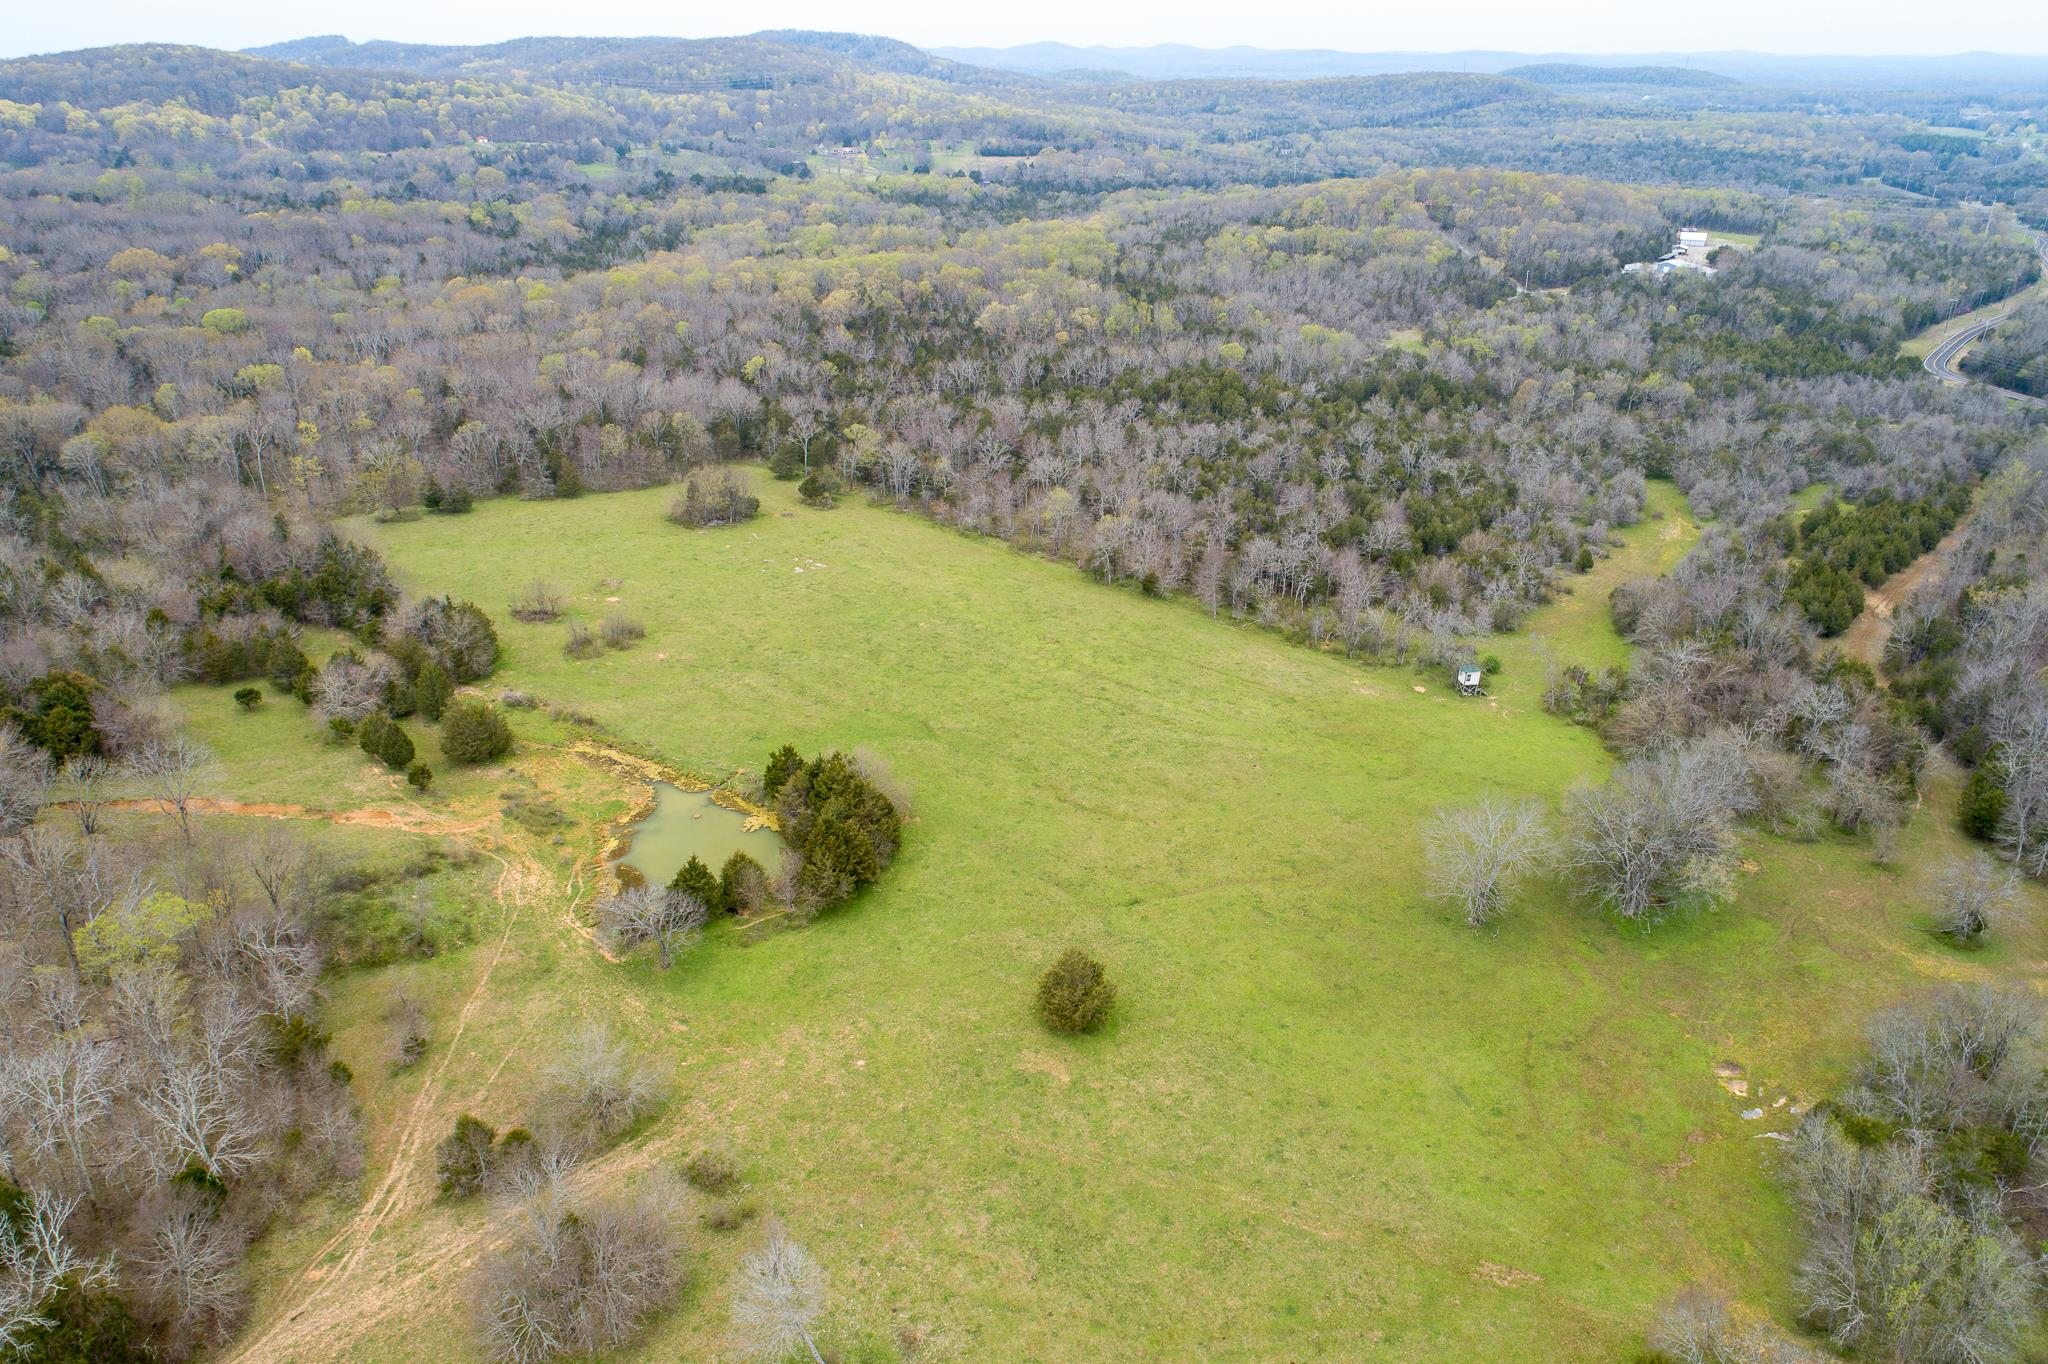 2620 Newman Rd, Rockvale, TN 37153 - Rockvale, TN real estate listing